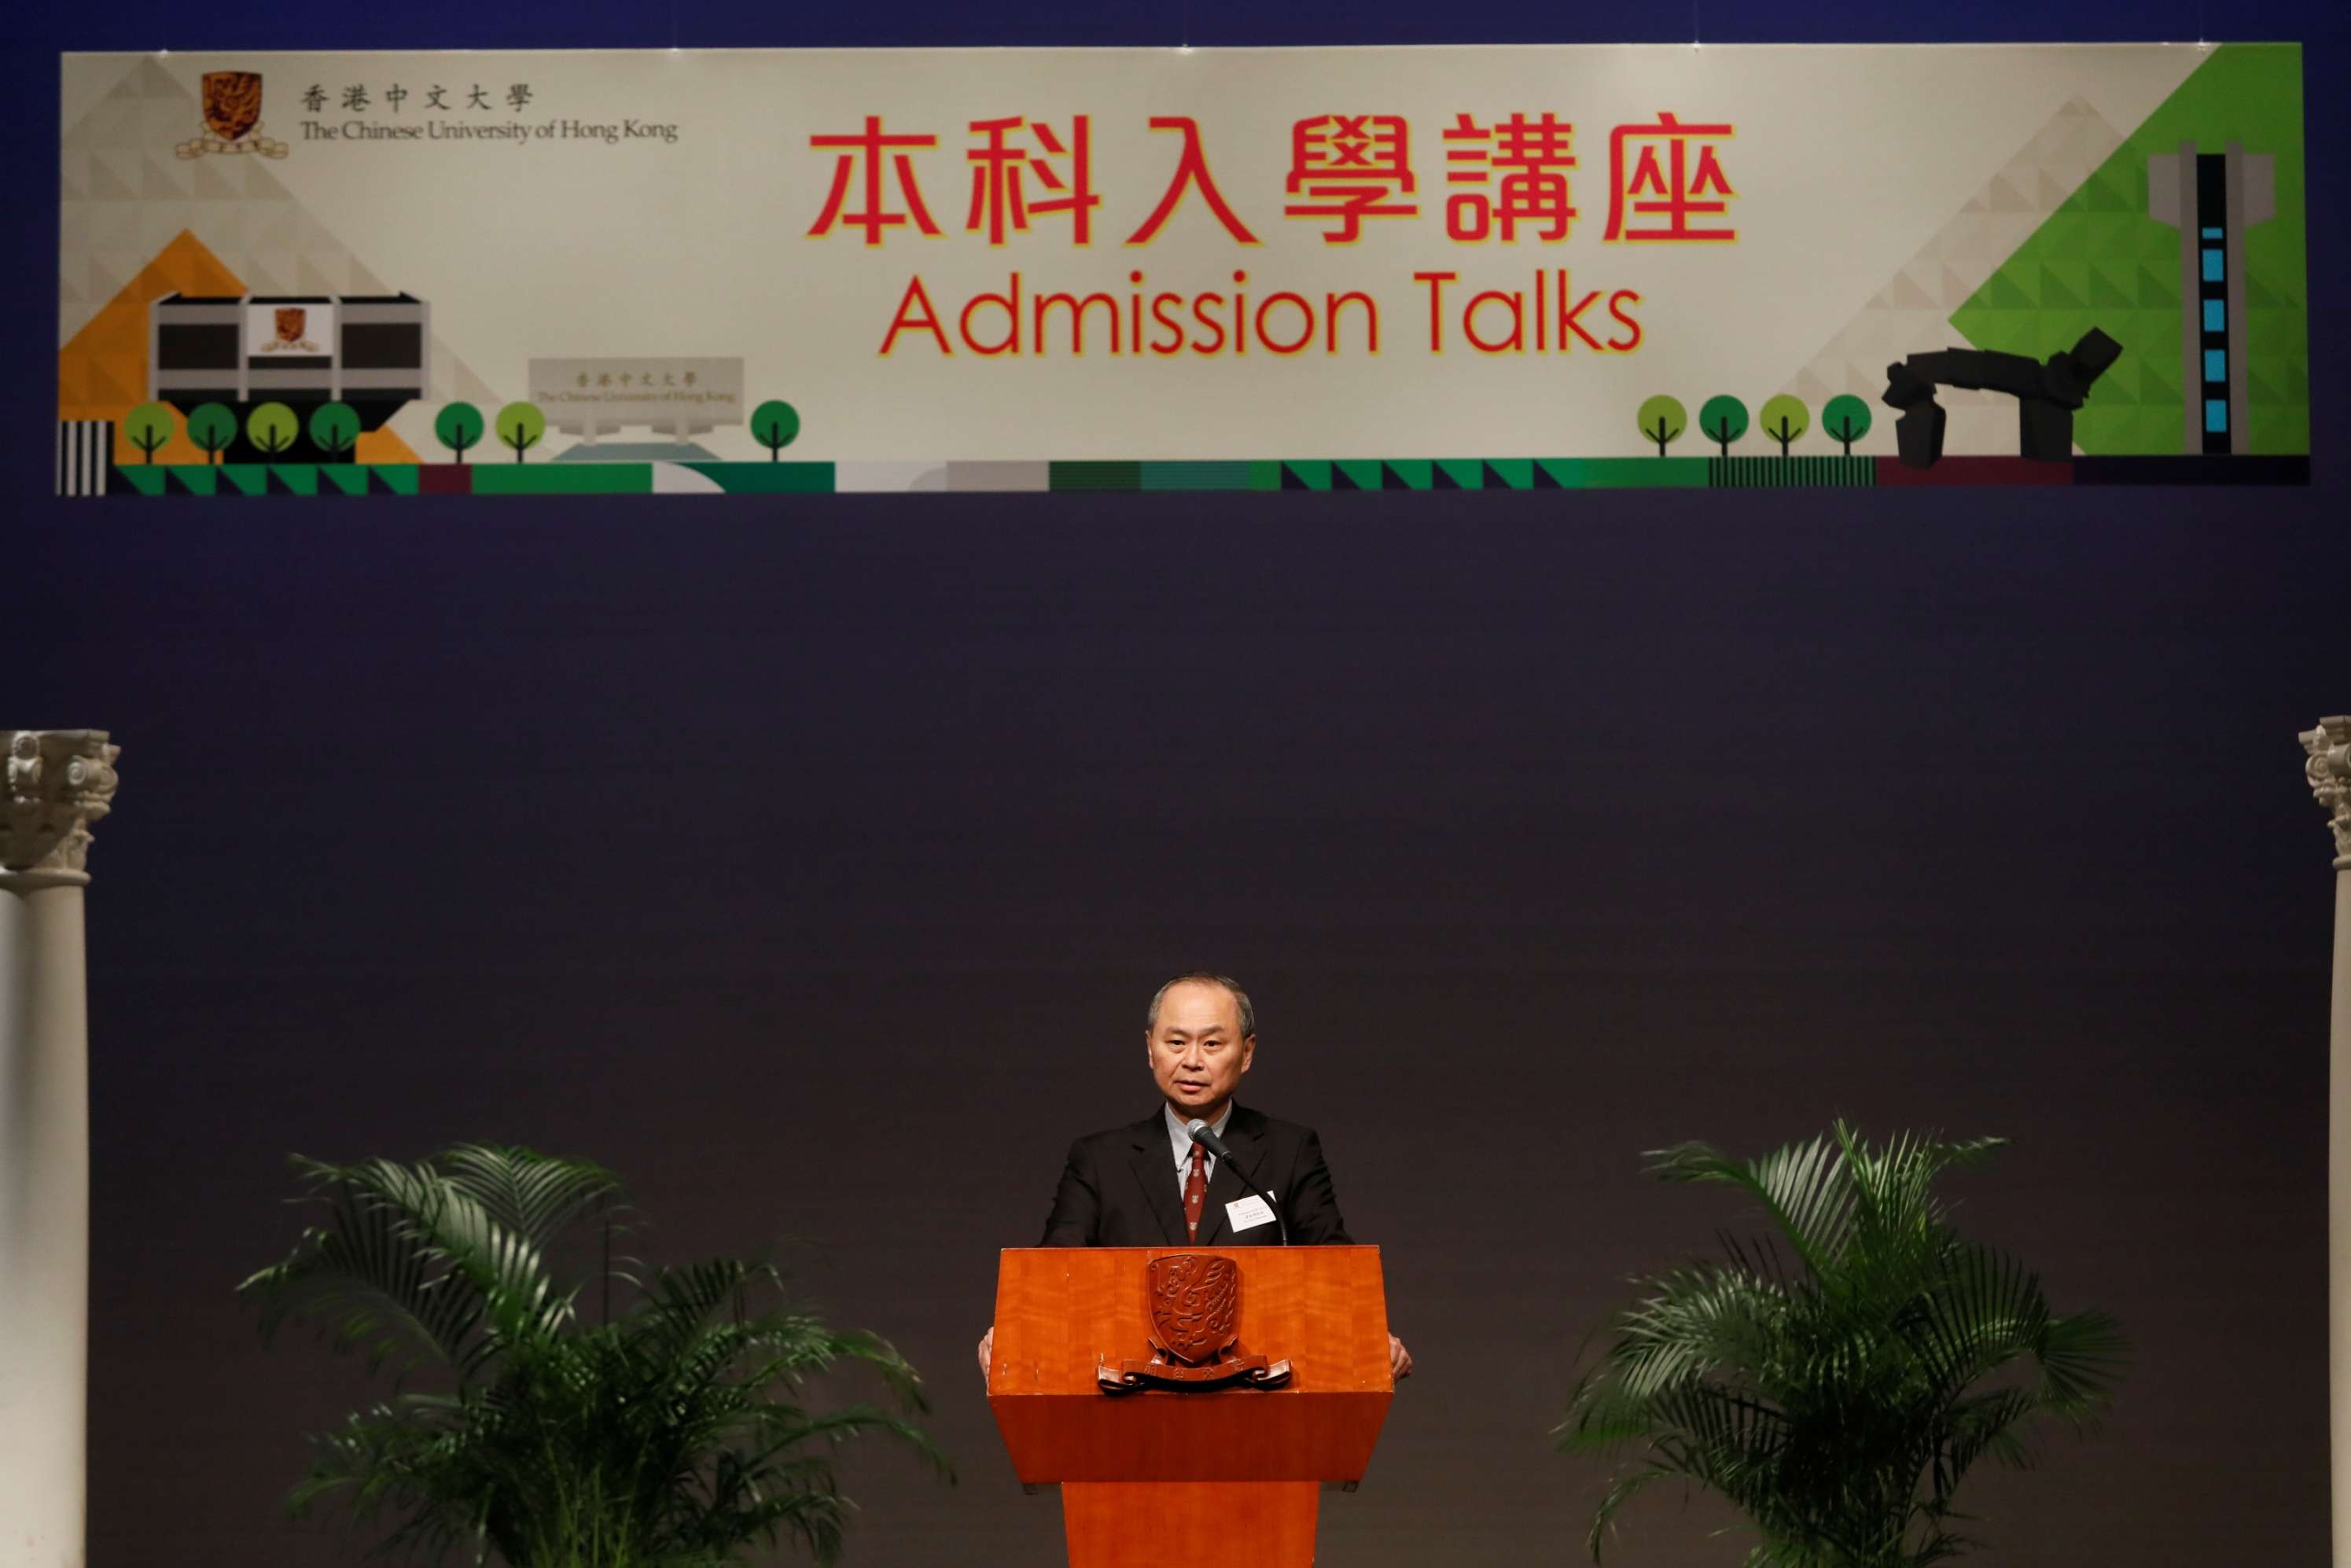 Prof. Fok Tai-fai, Pro-Vice-Chancellor of CUHK delivers a welcoming address.